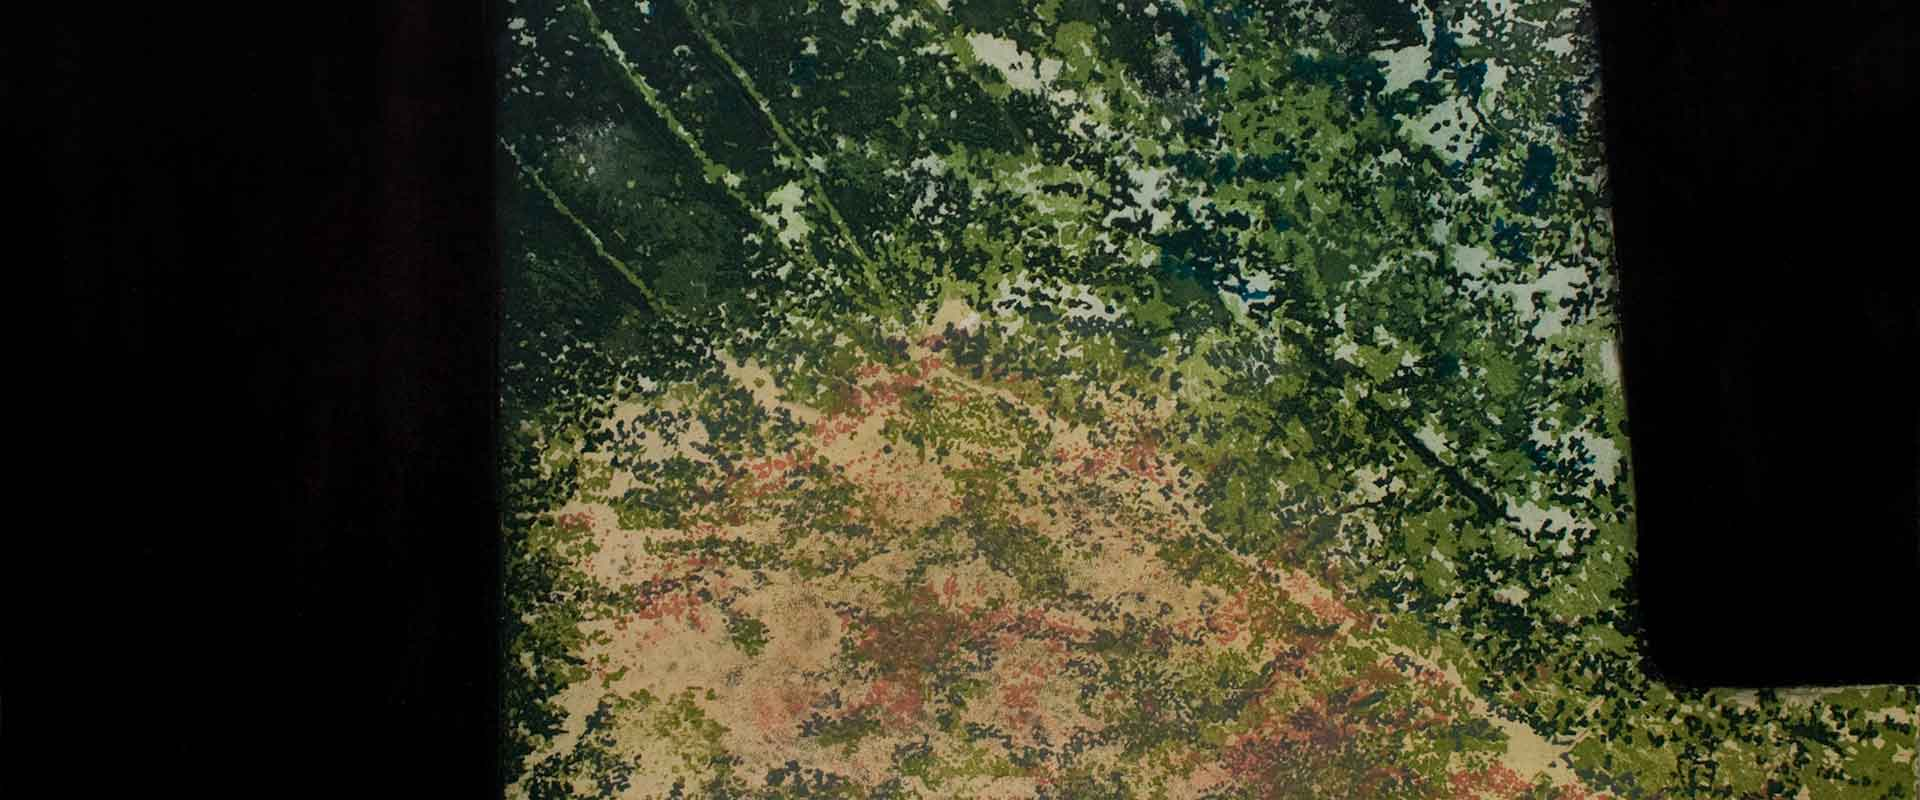 Glade detail of etching and carborundum print by Stephen Vaughan